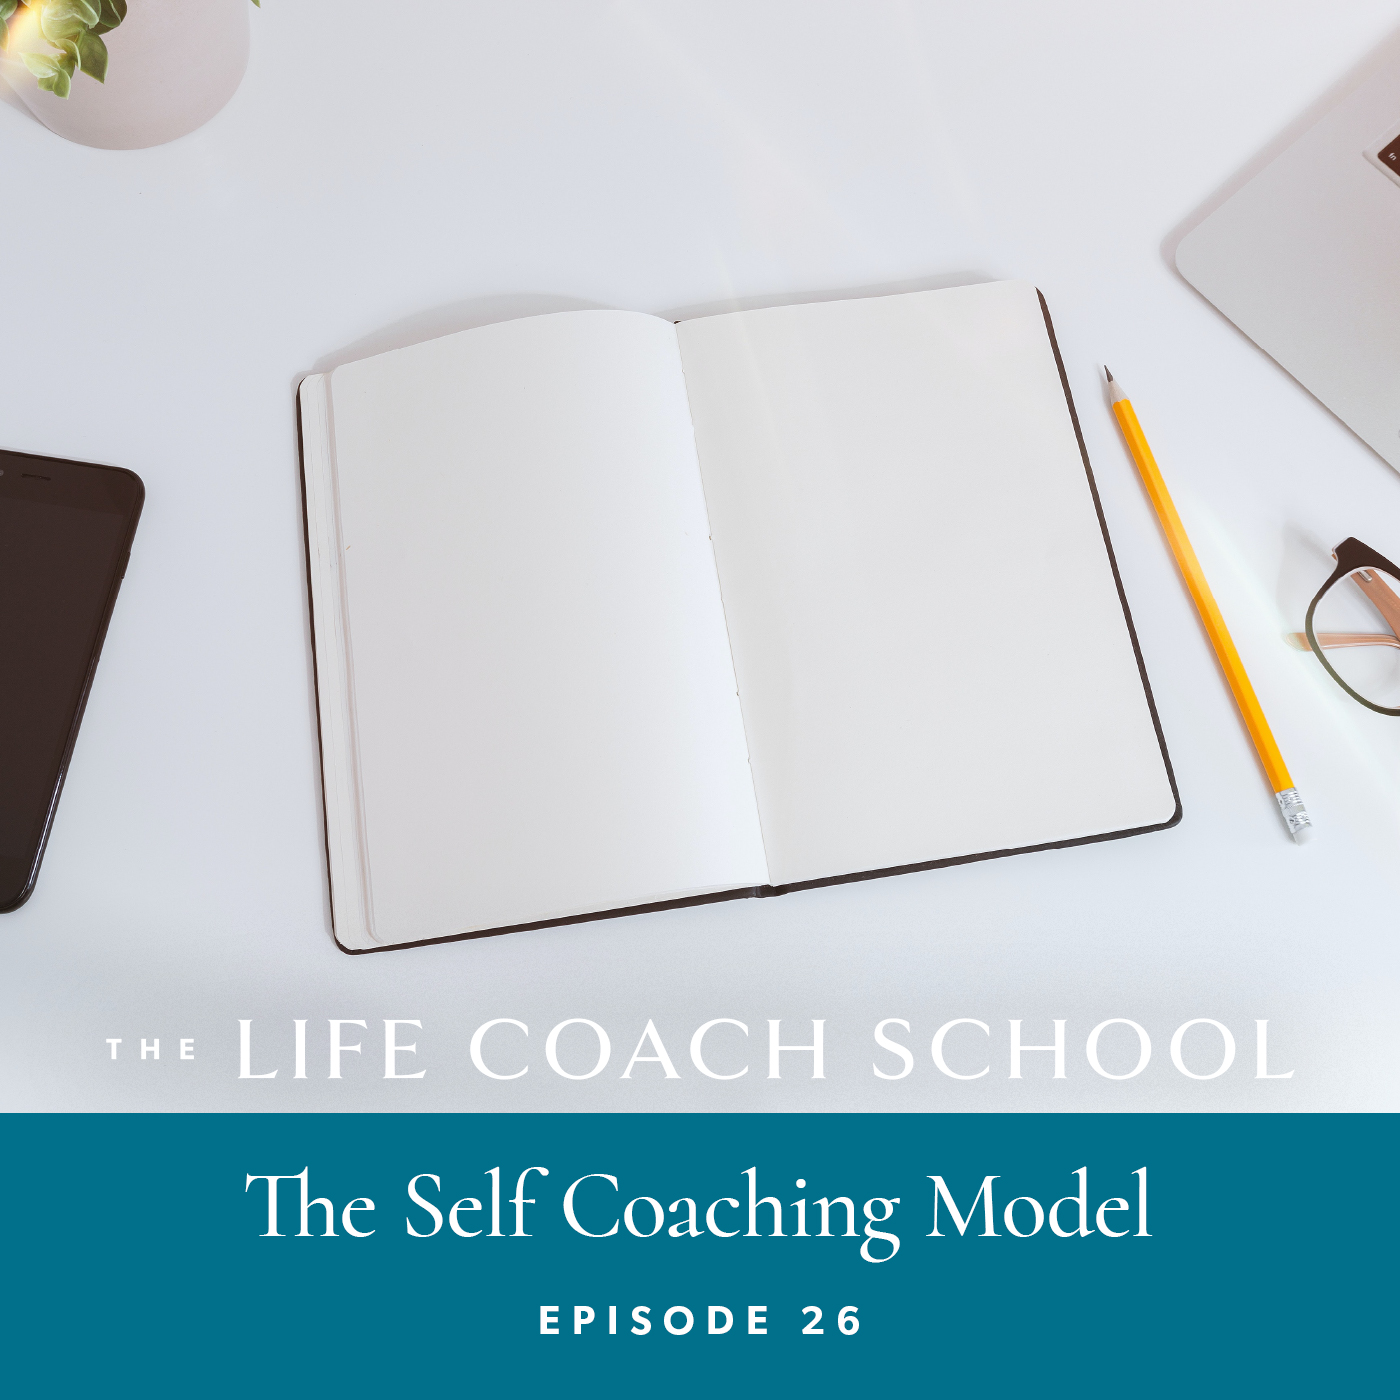 The Life Coach School Podcast with Brooke Castillo | Episode 26 | The Self Coaching Model